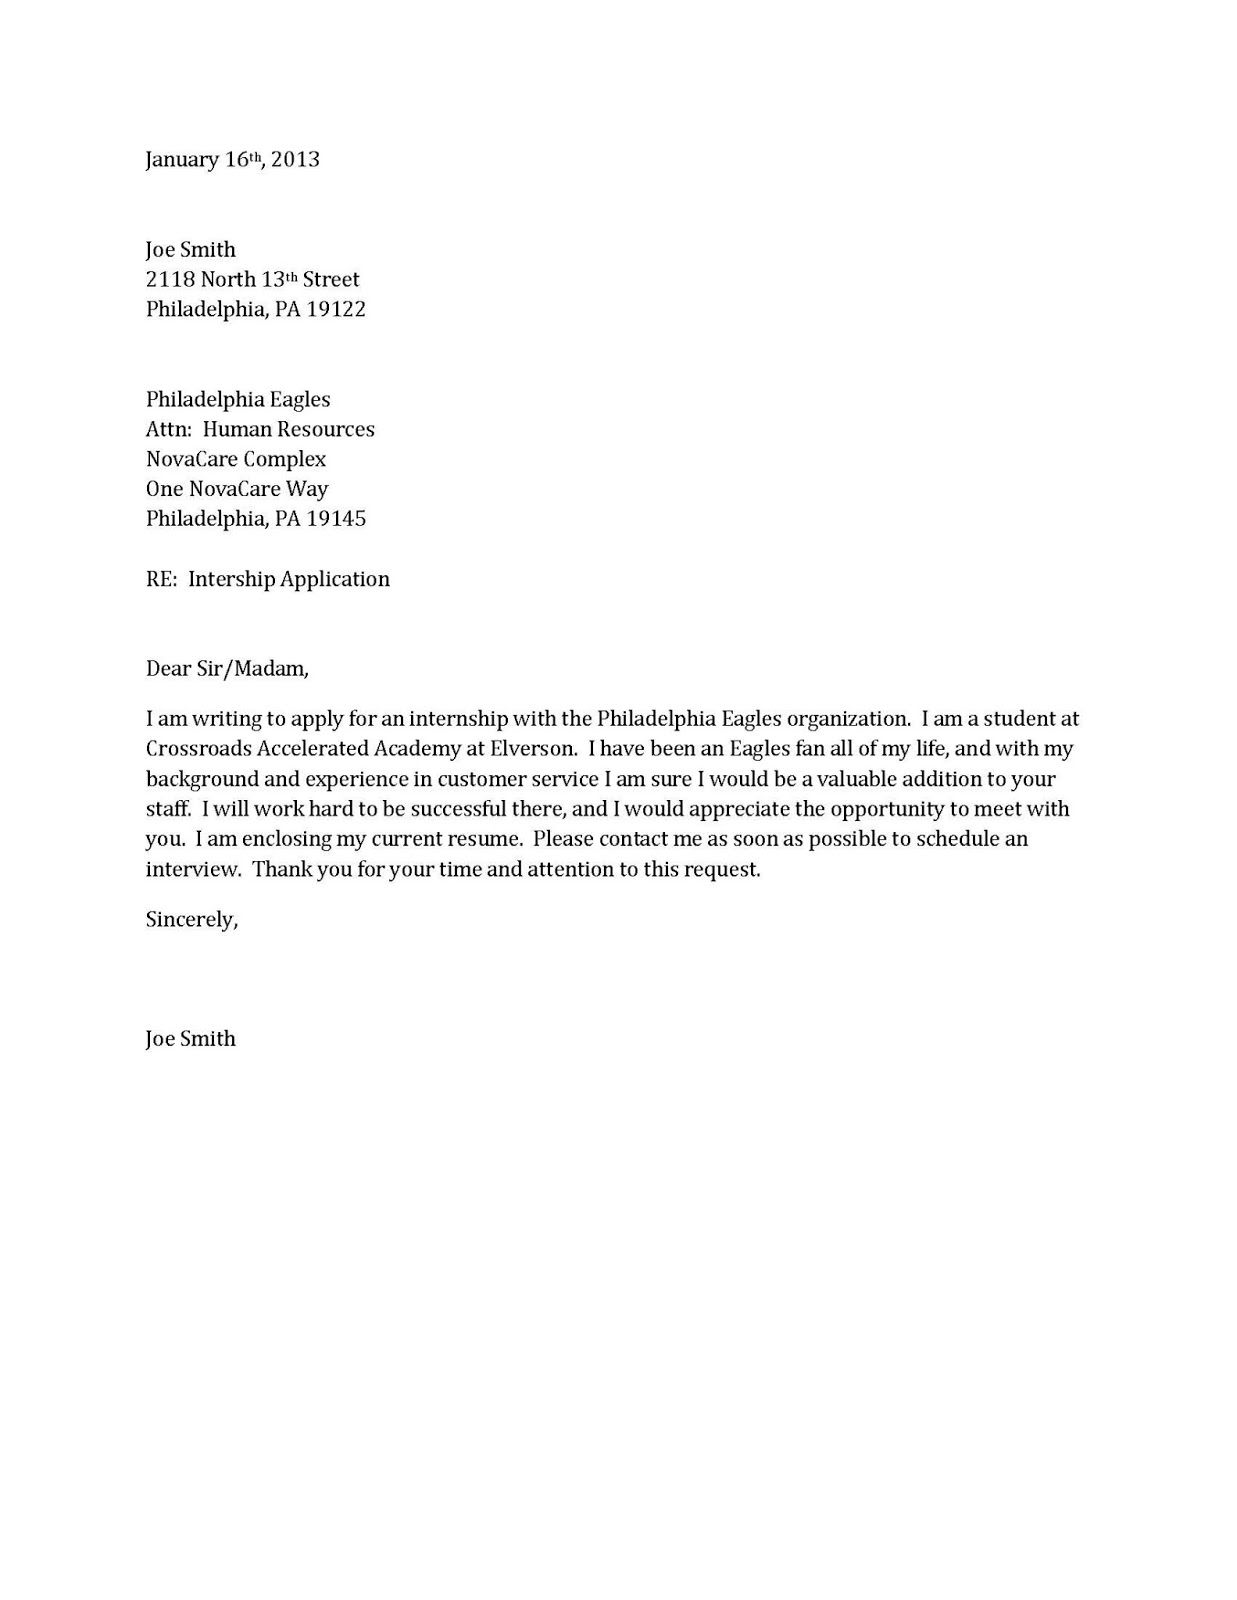 Resume Cover Letter Examples  Homework    Resume Cover